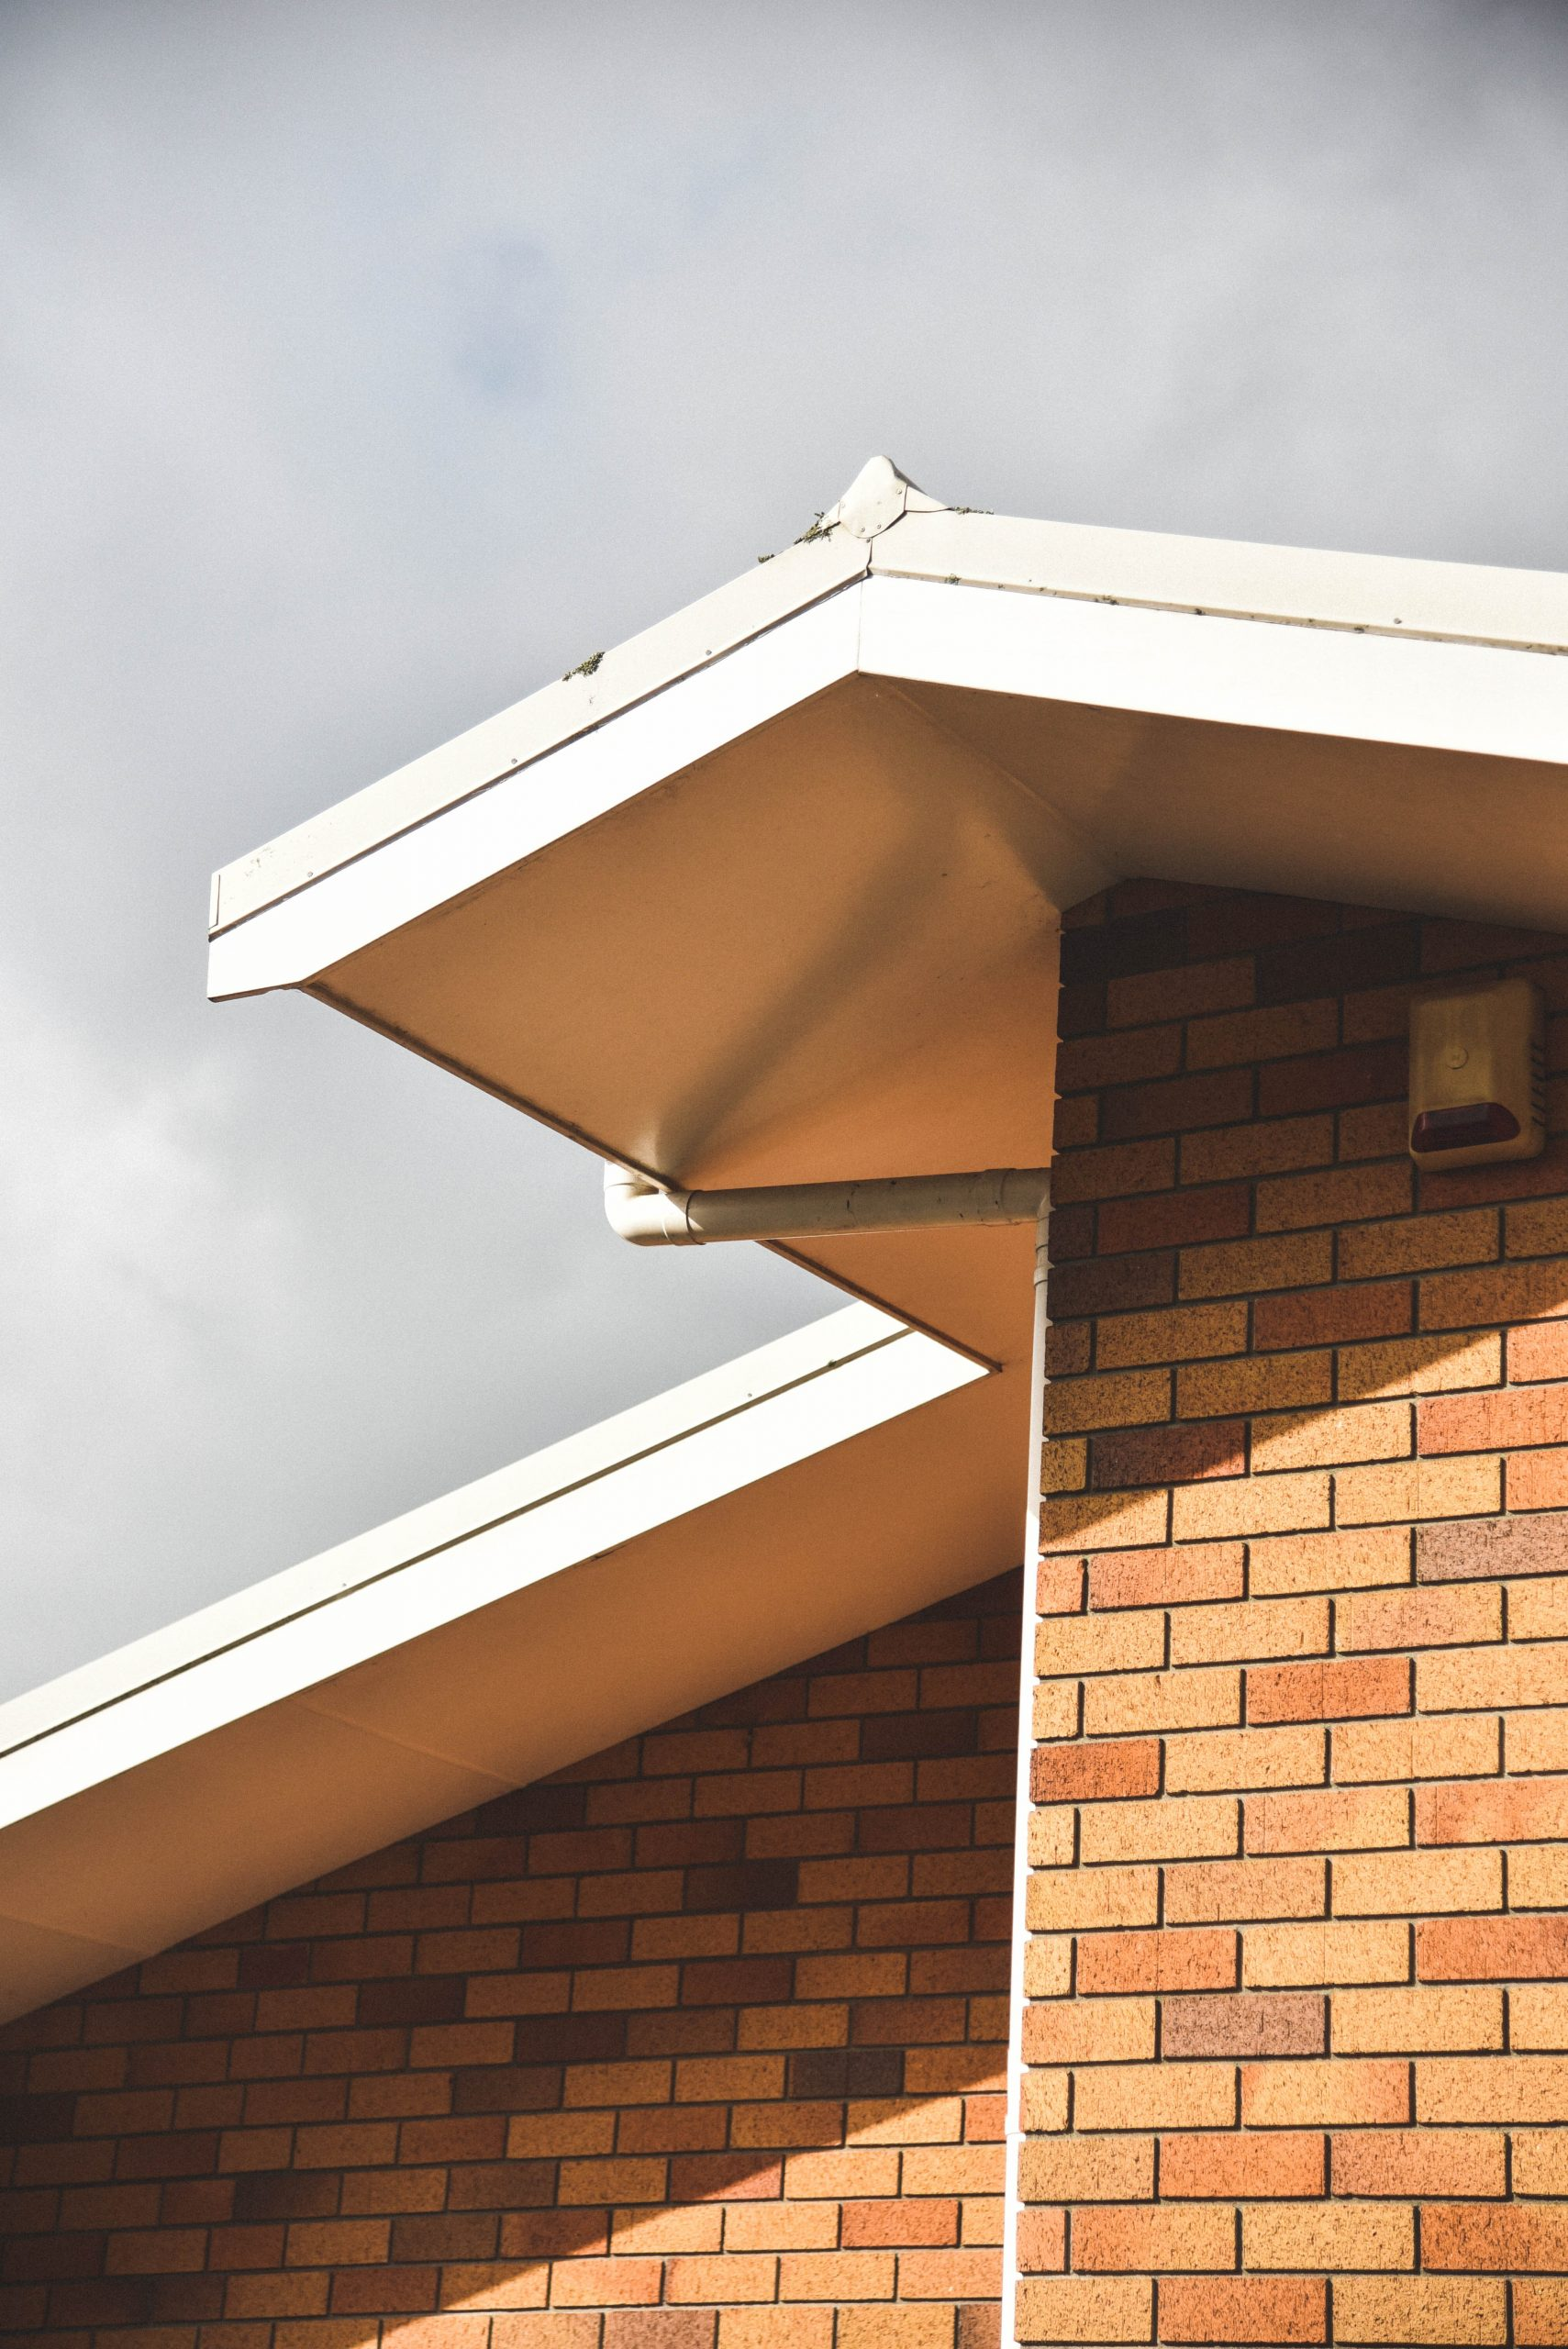 What Are the Benefits of Seamless Gutter Installation?